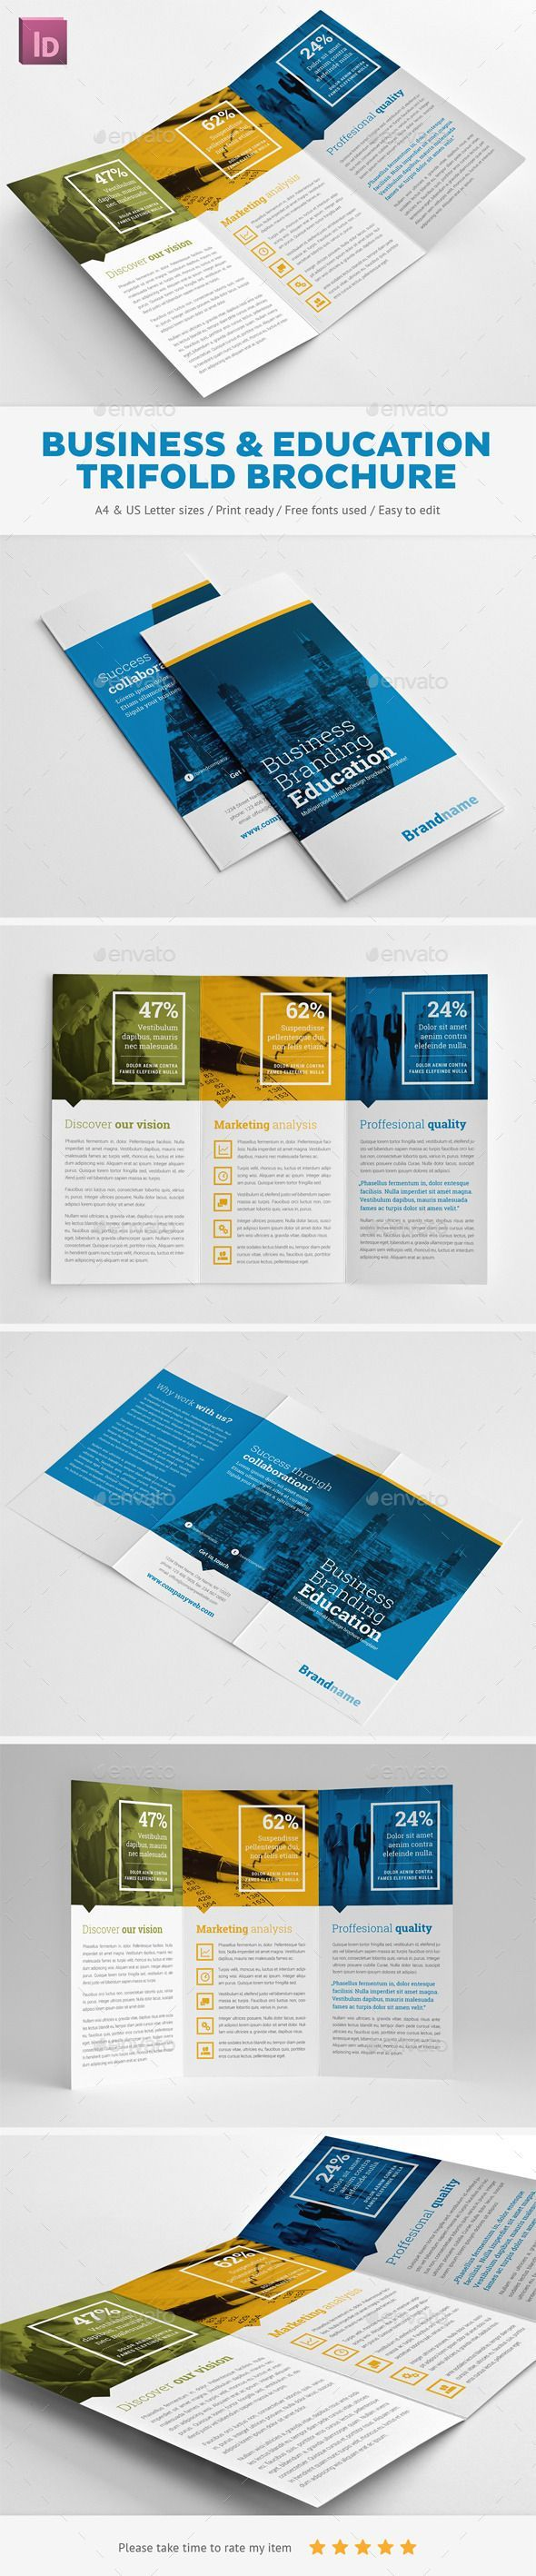 Business Branding & Education Trifold Brochure Template. Download…